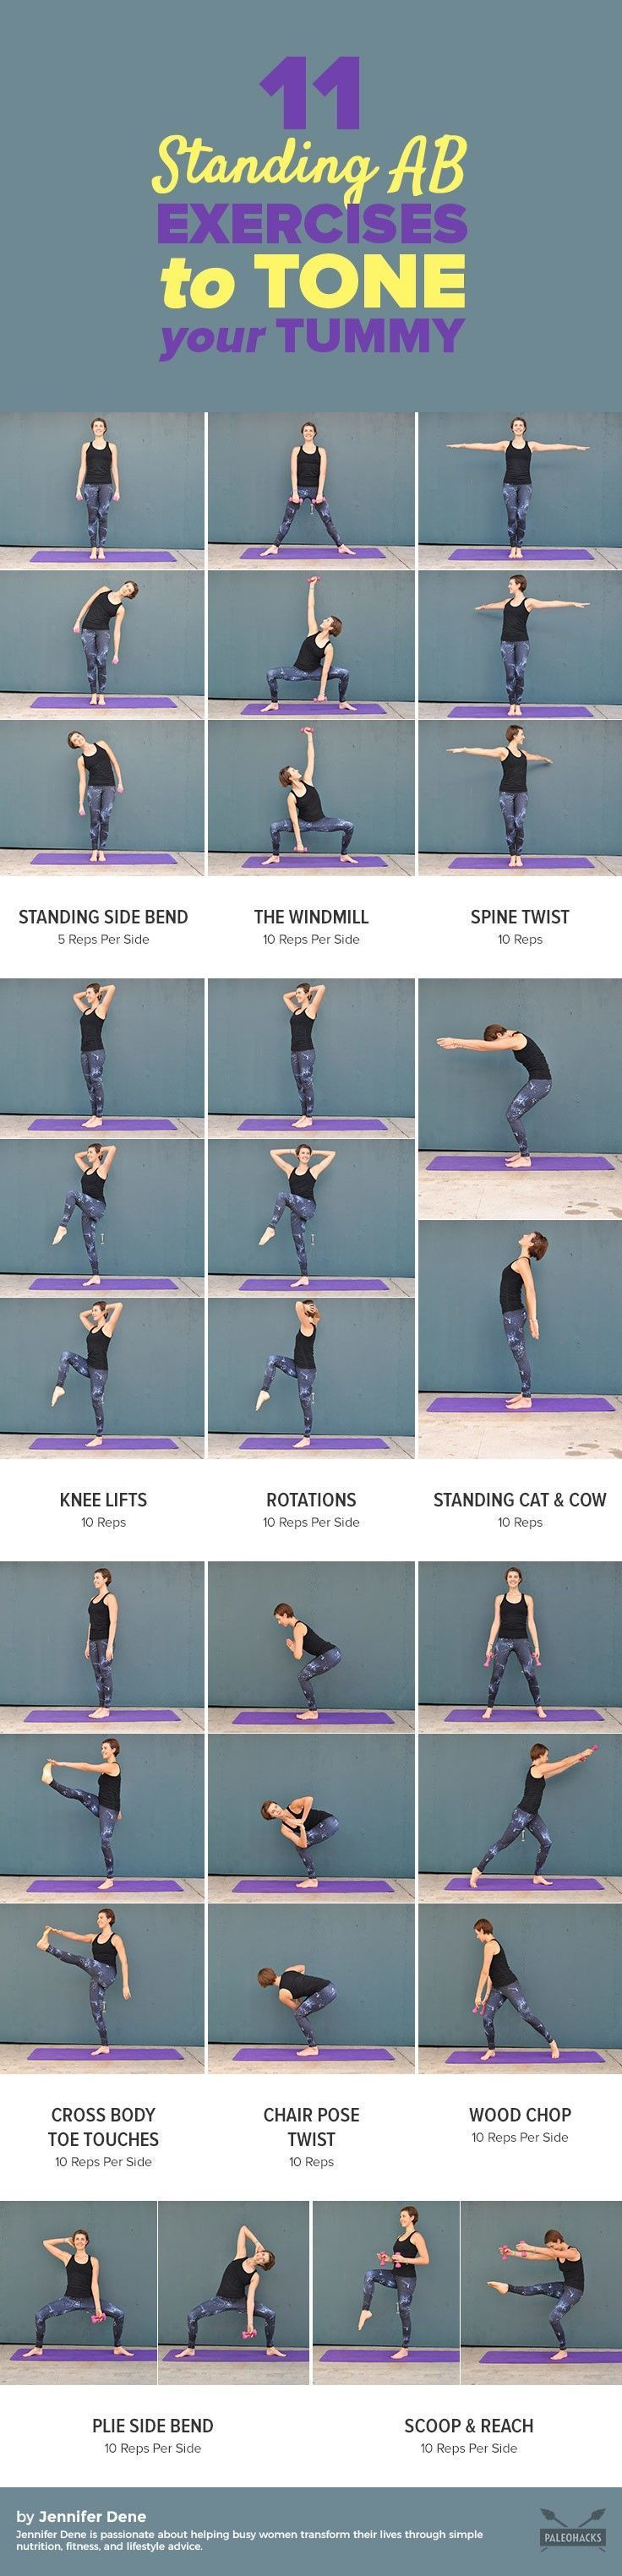 Tone and strengthen your tummy anywhere with these easy standing ab exercises! The added benefits? Improved balance, better posture, and no workout mat needed. Get the exercises here: http://paleo.co/standingabexercises